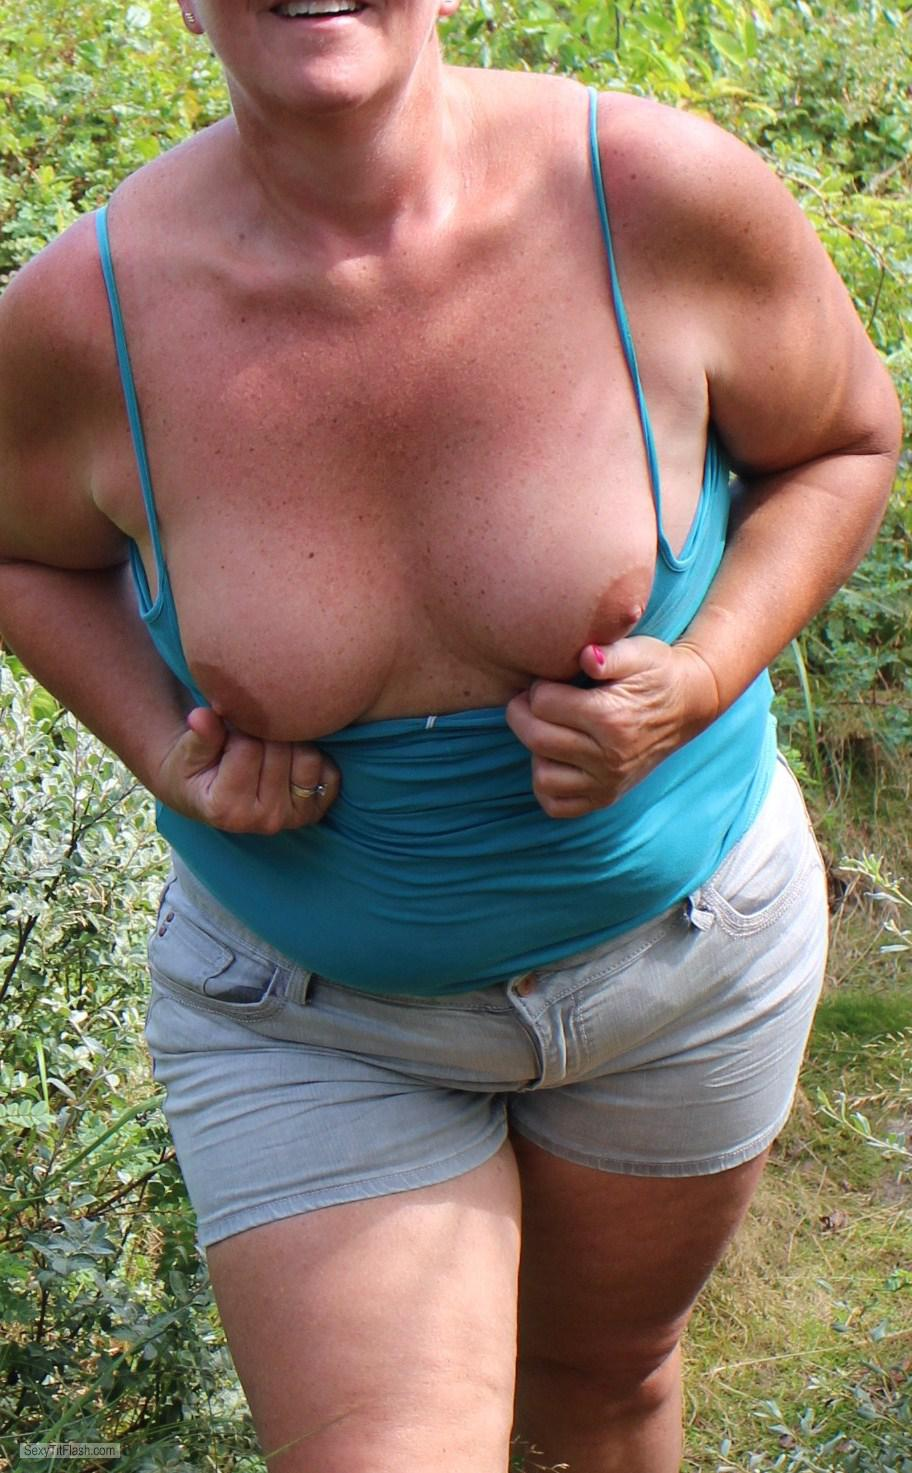 Tit Flash: My Medium Tits - B-women from Belgium